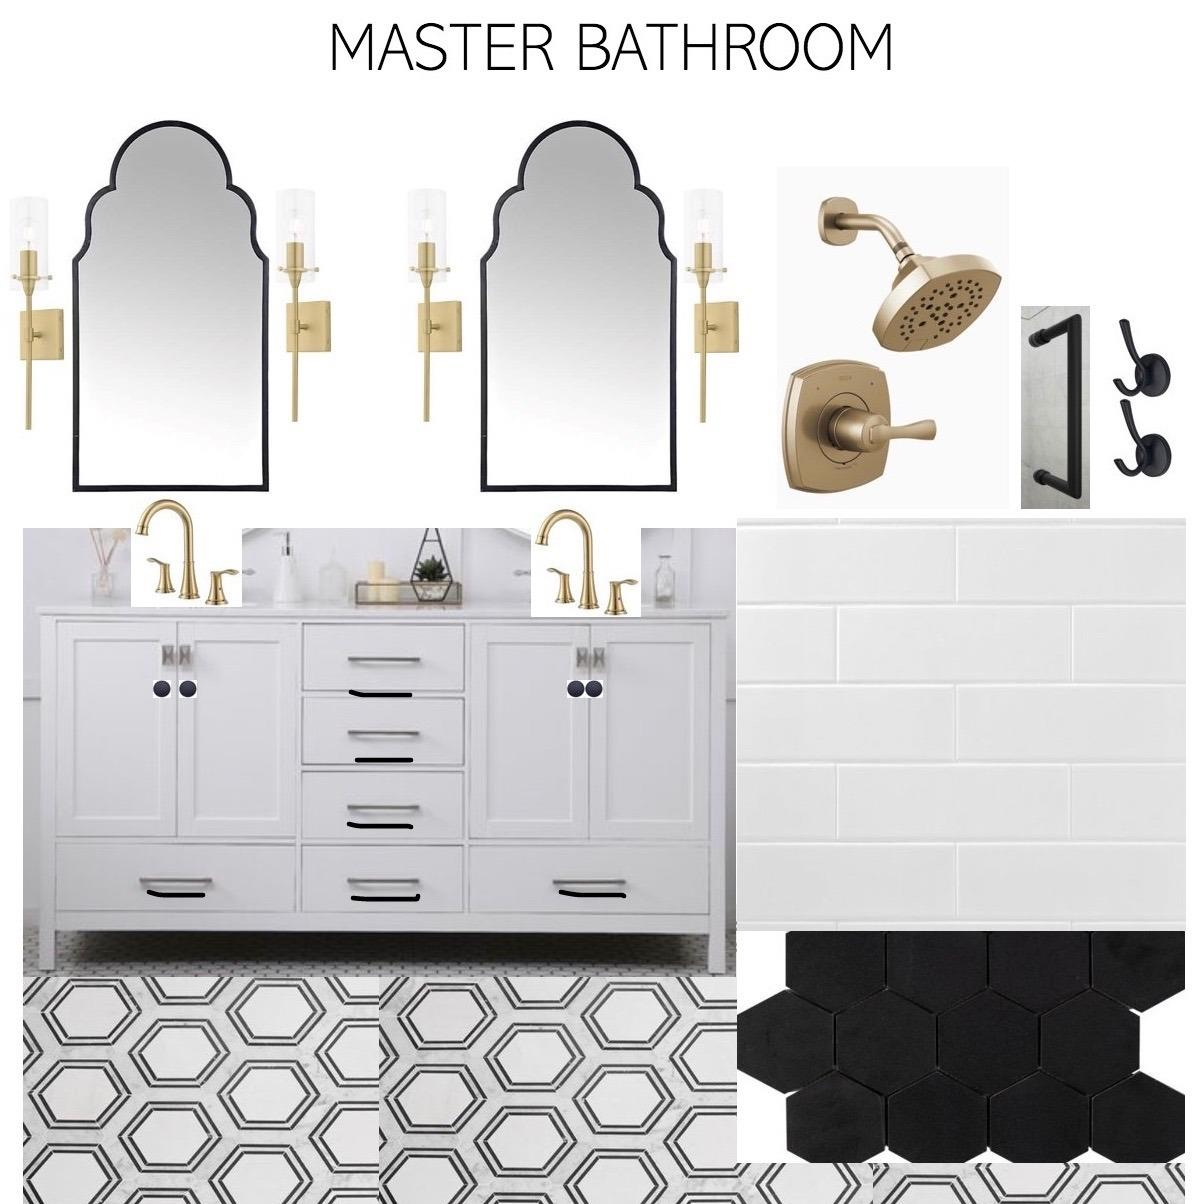 Sample master bathroom selection examples.